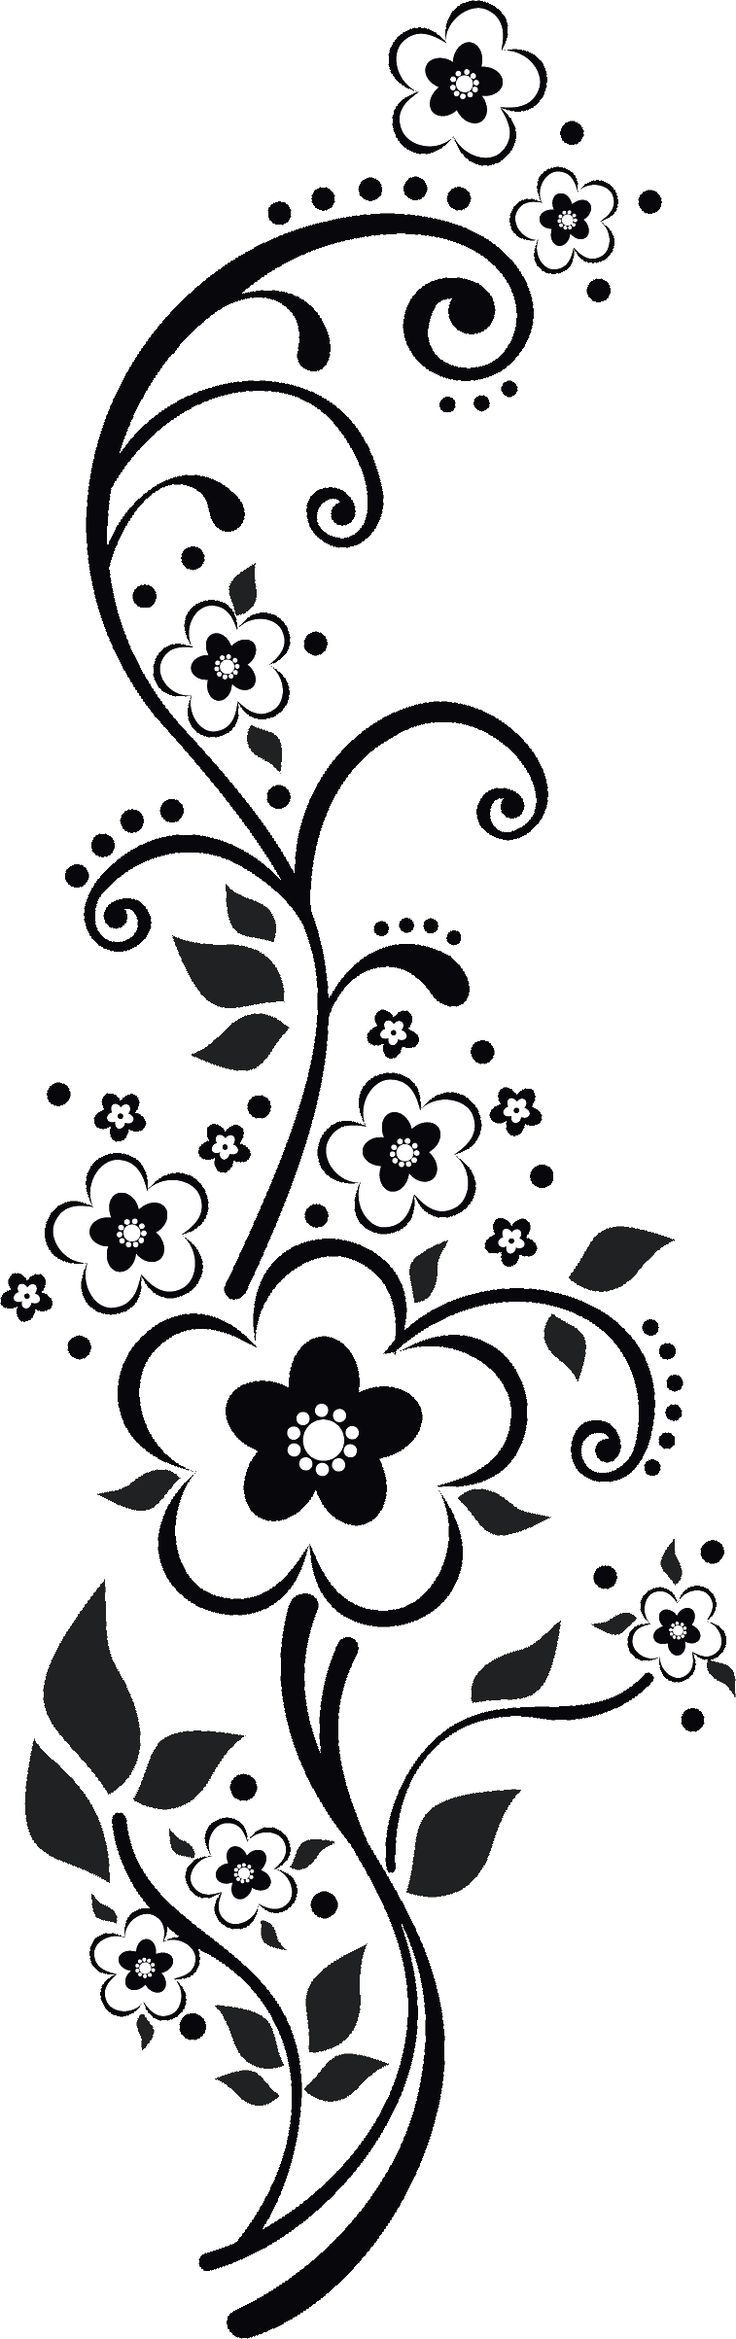 tattoos vector graphics - Recherche Google